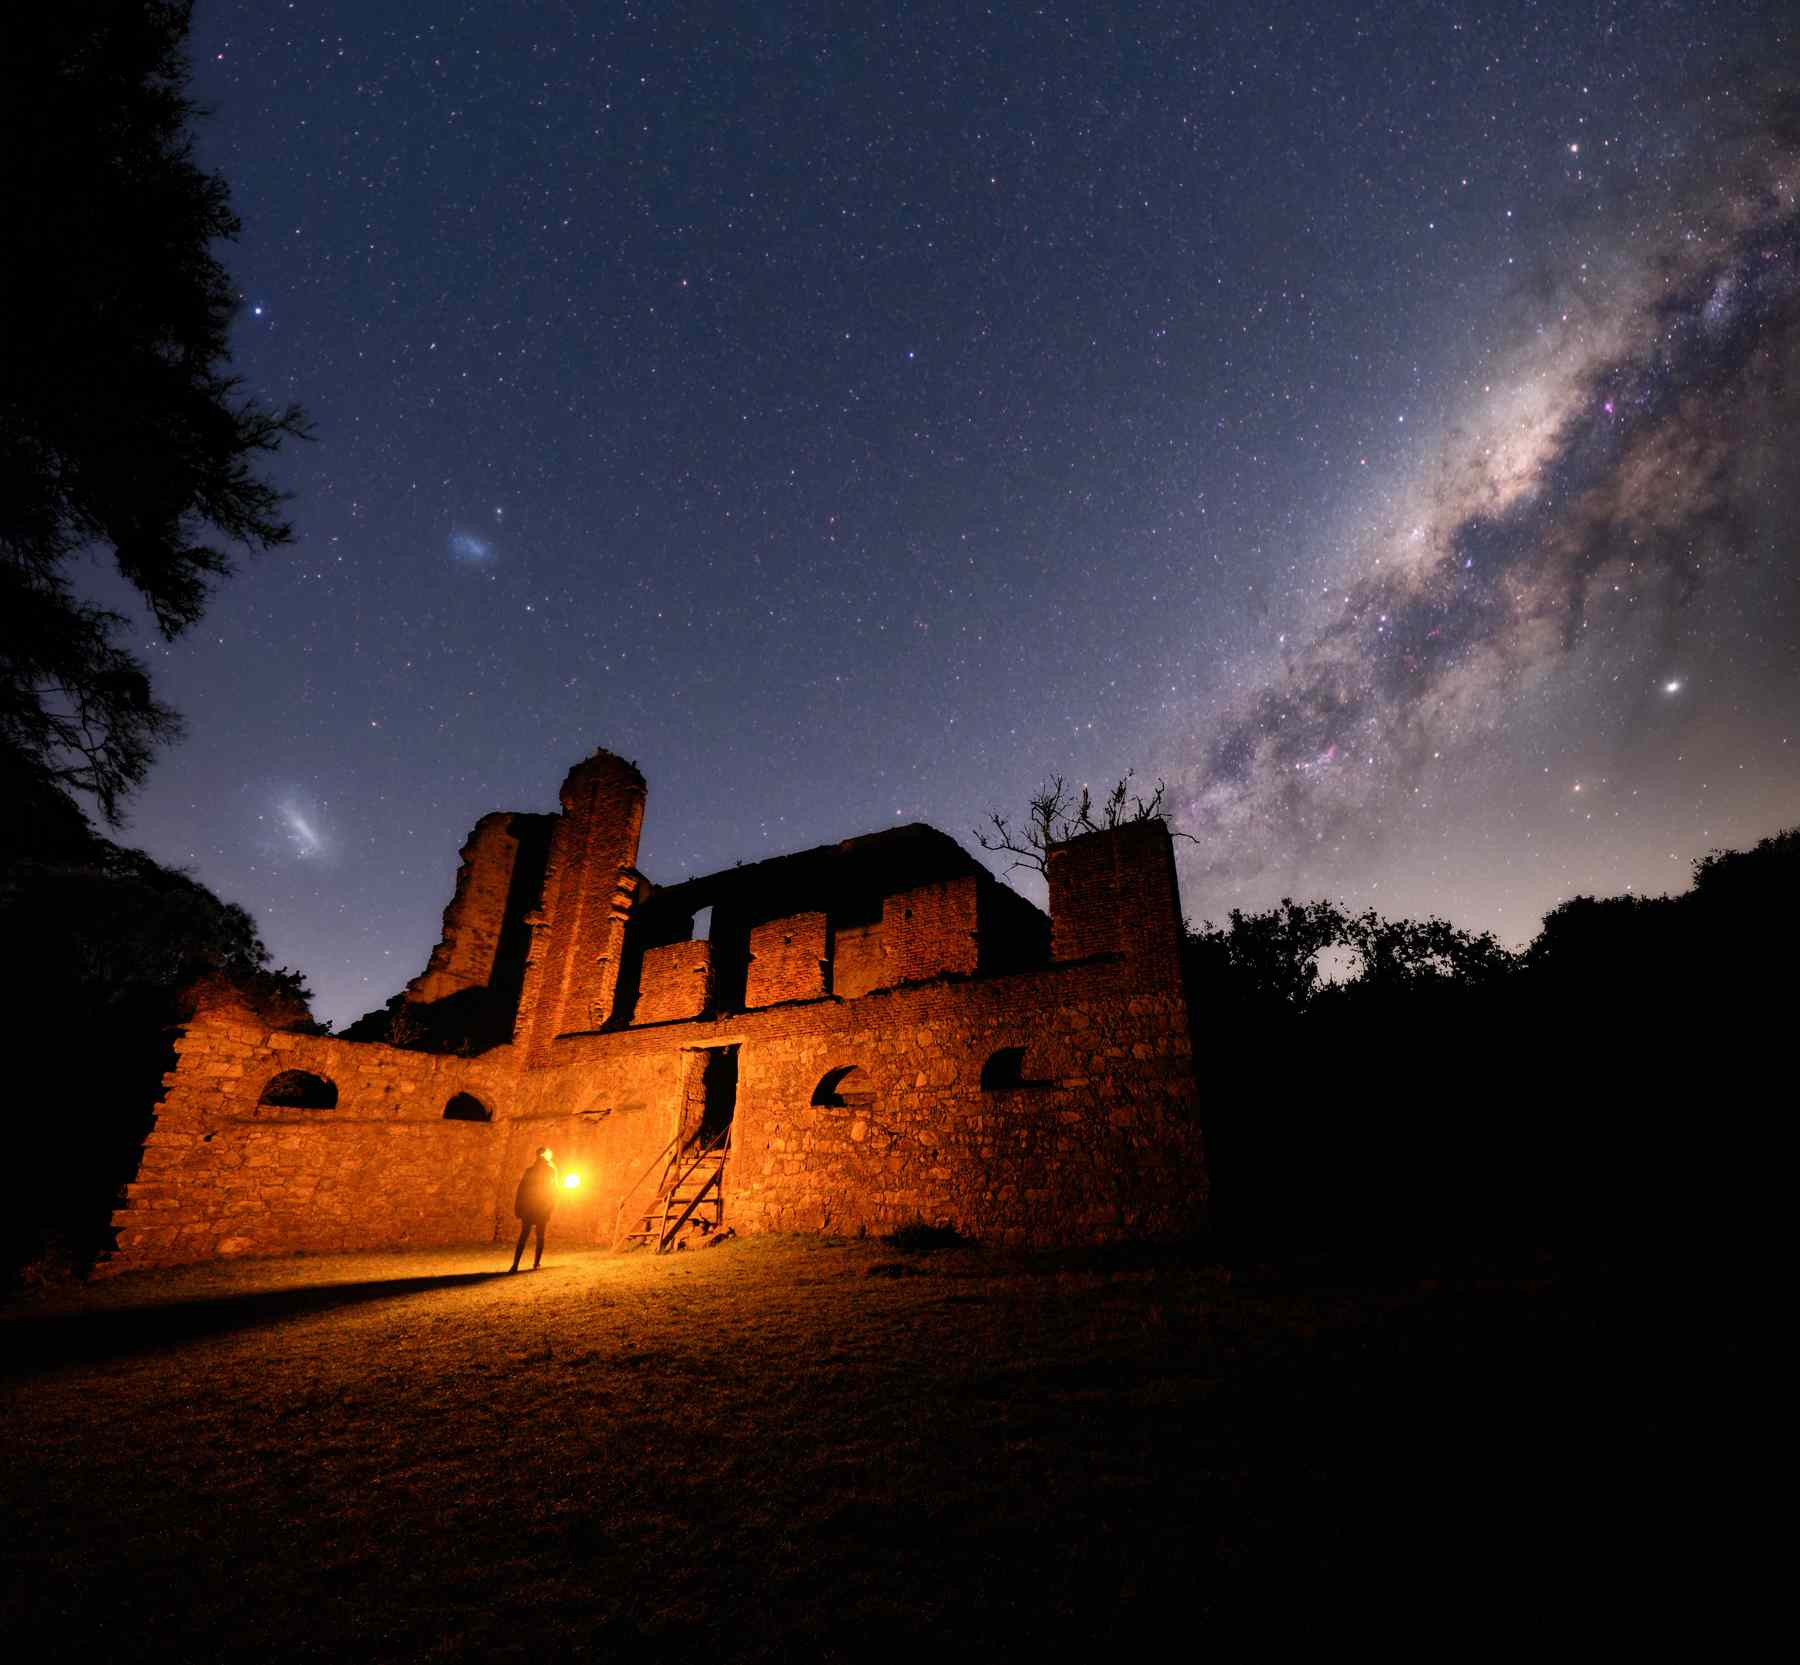 person holding a light standing in the ruins of a stone building with a starry sky overhead